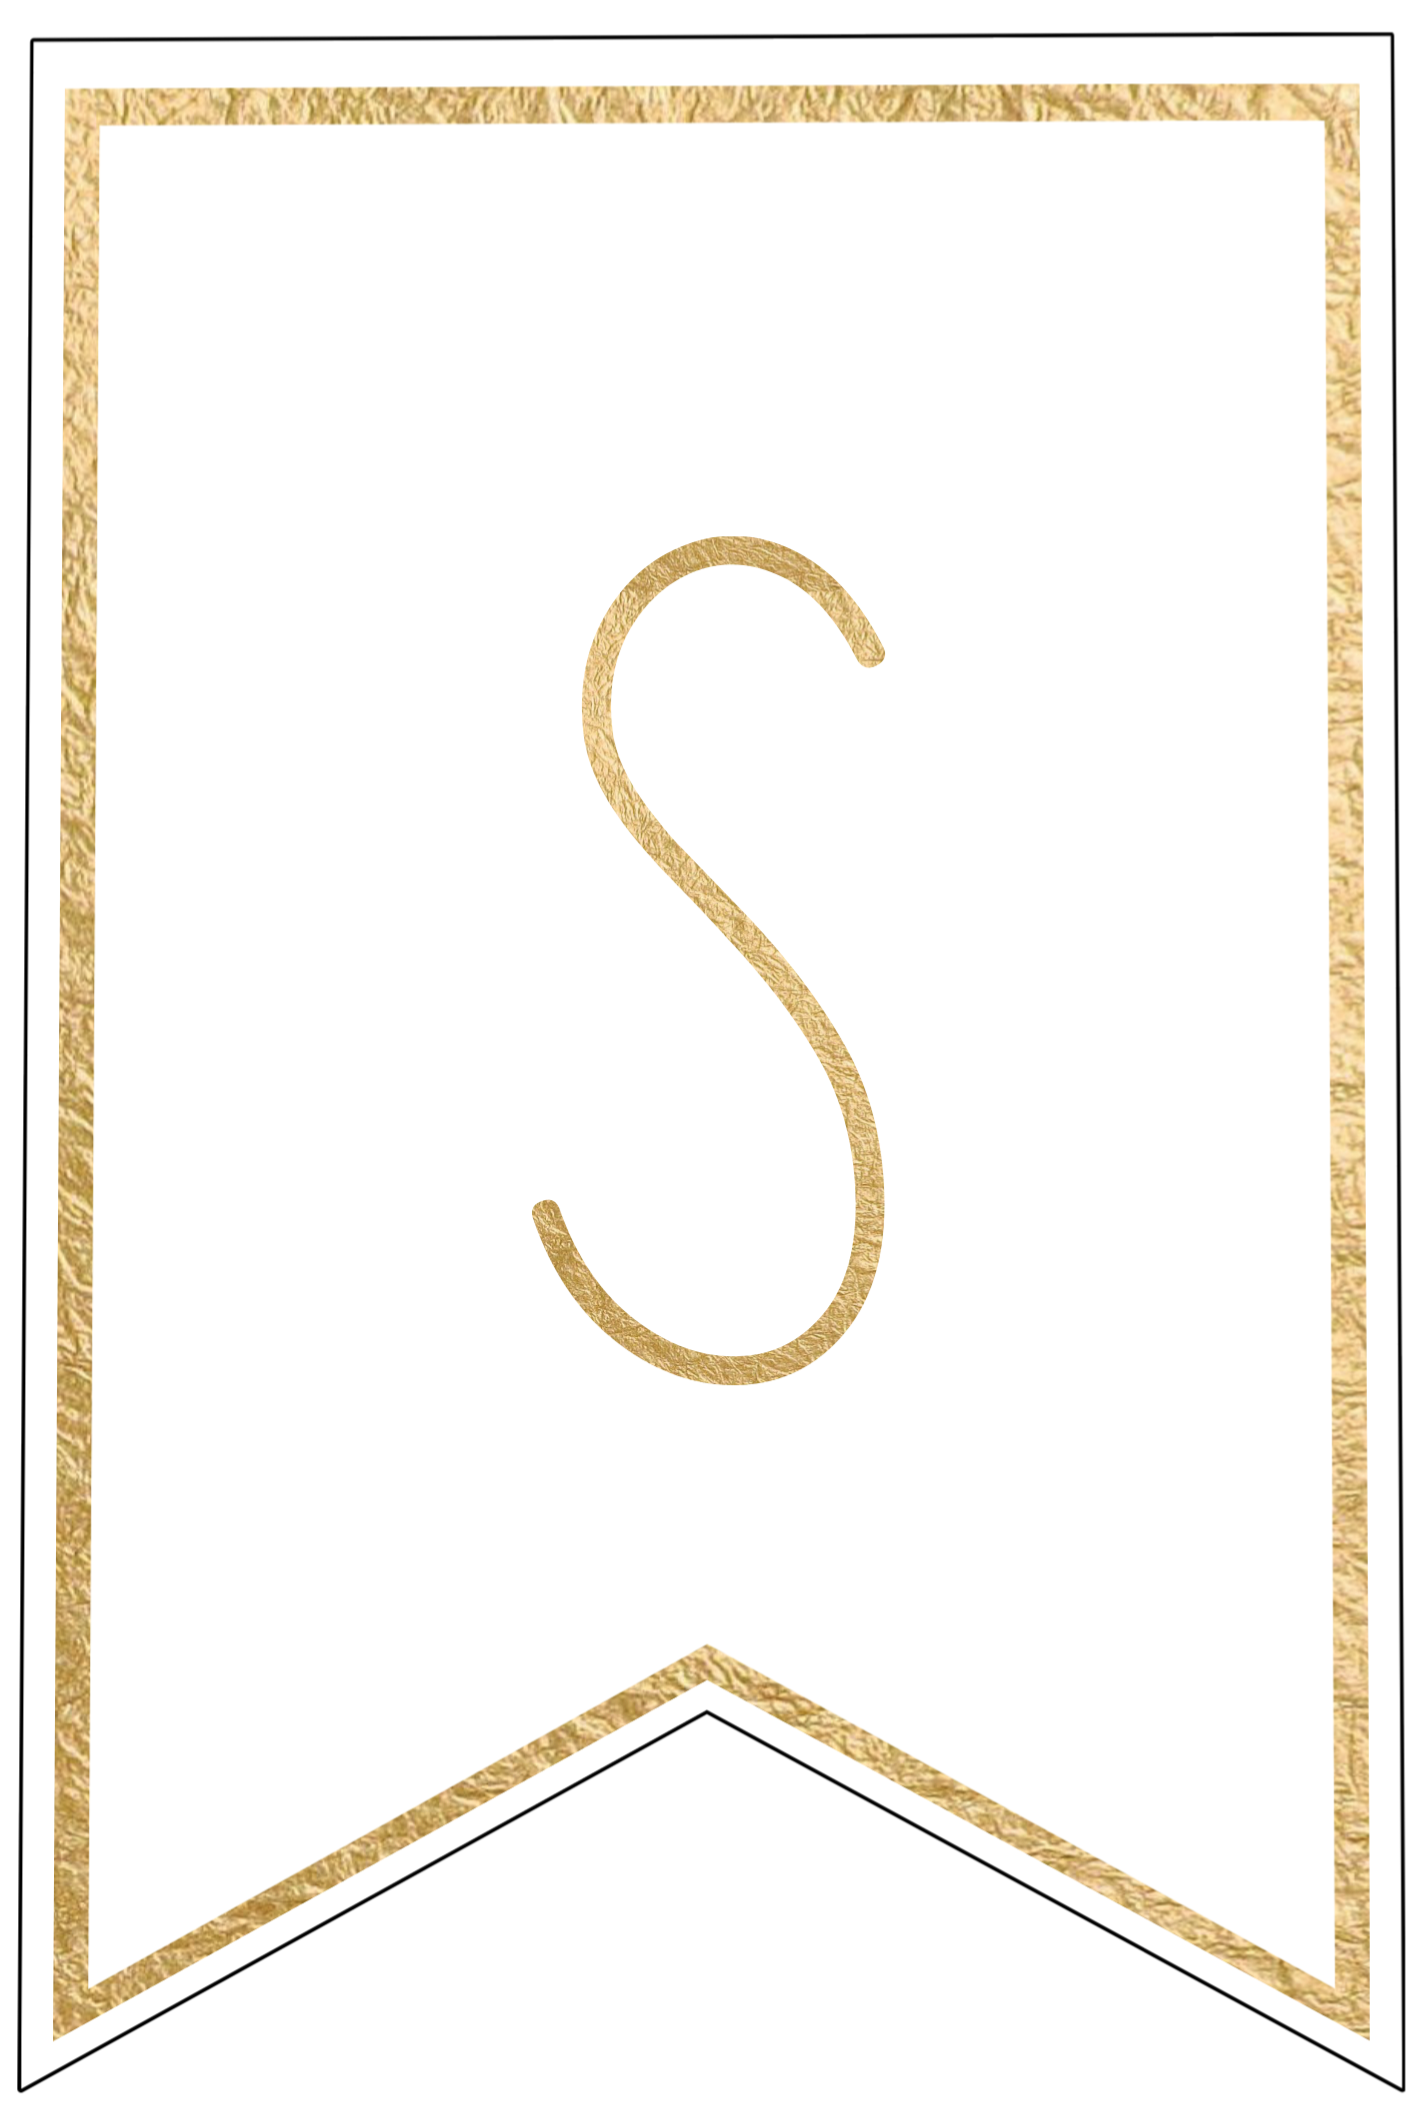 It's just an image of Terrible Letter S Printable